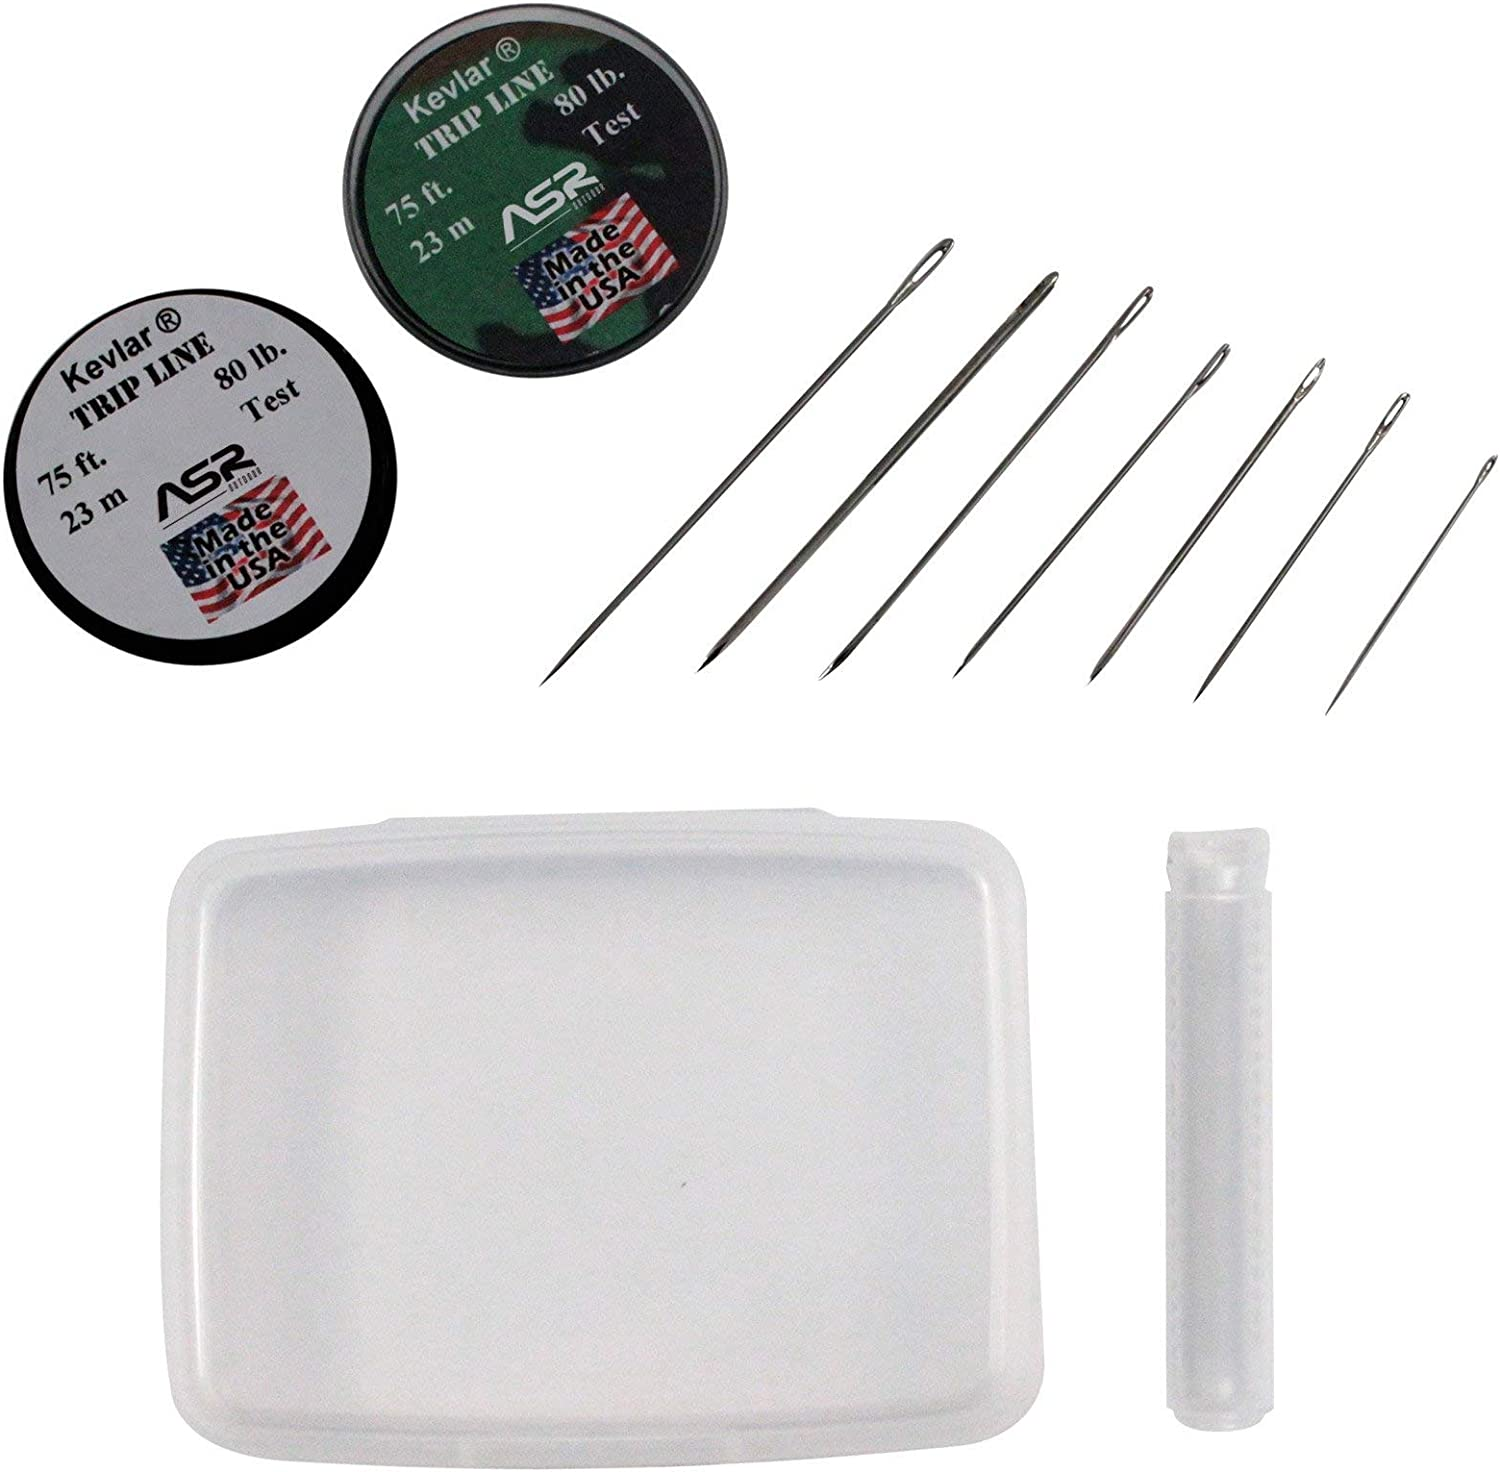 Shomer-Tec Survival Sewing Kit This sewing kit can ensure that whatever you need sewn will stay fixed. It features 2 spools of 80 lb test Kevlar sewing line, each containing 75 feet of braided line.